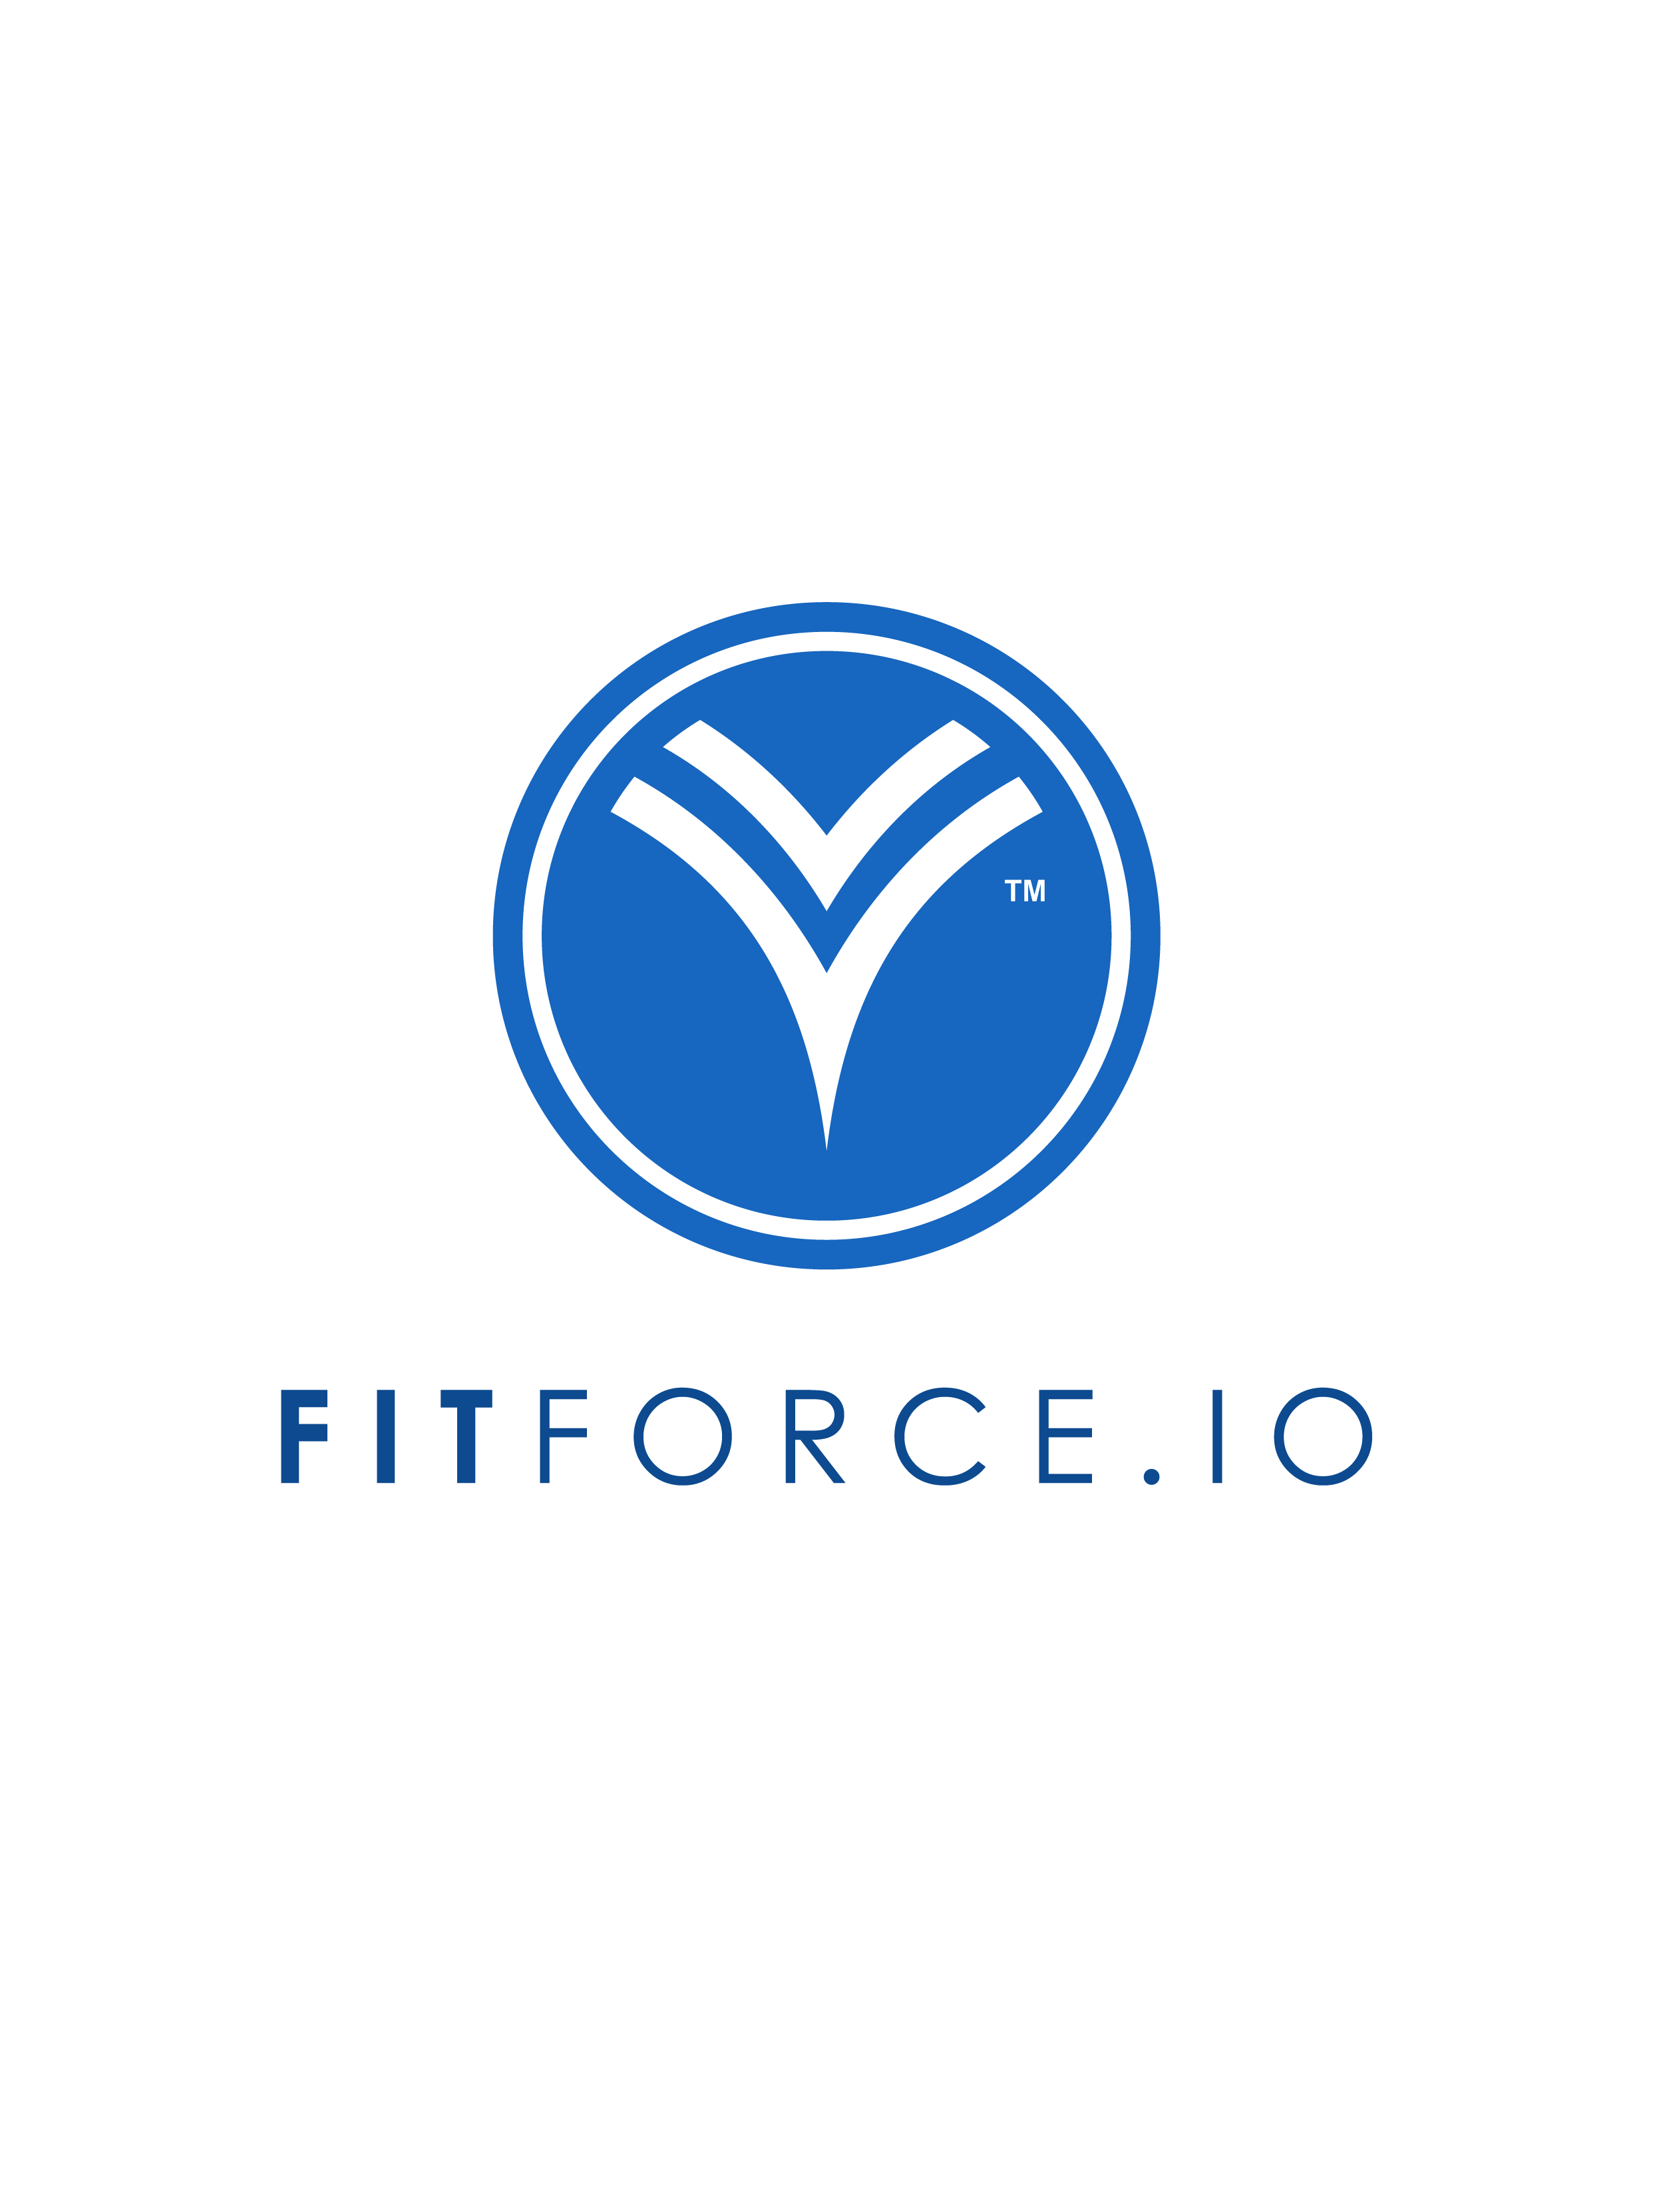 FitForce.io Logo Design